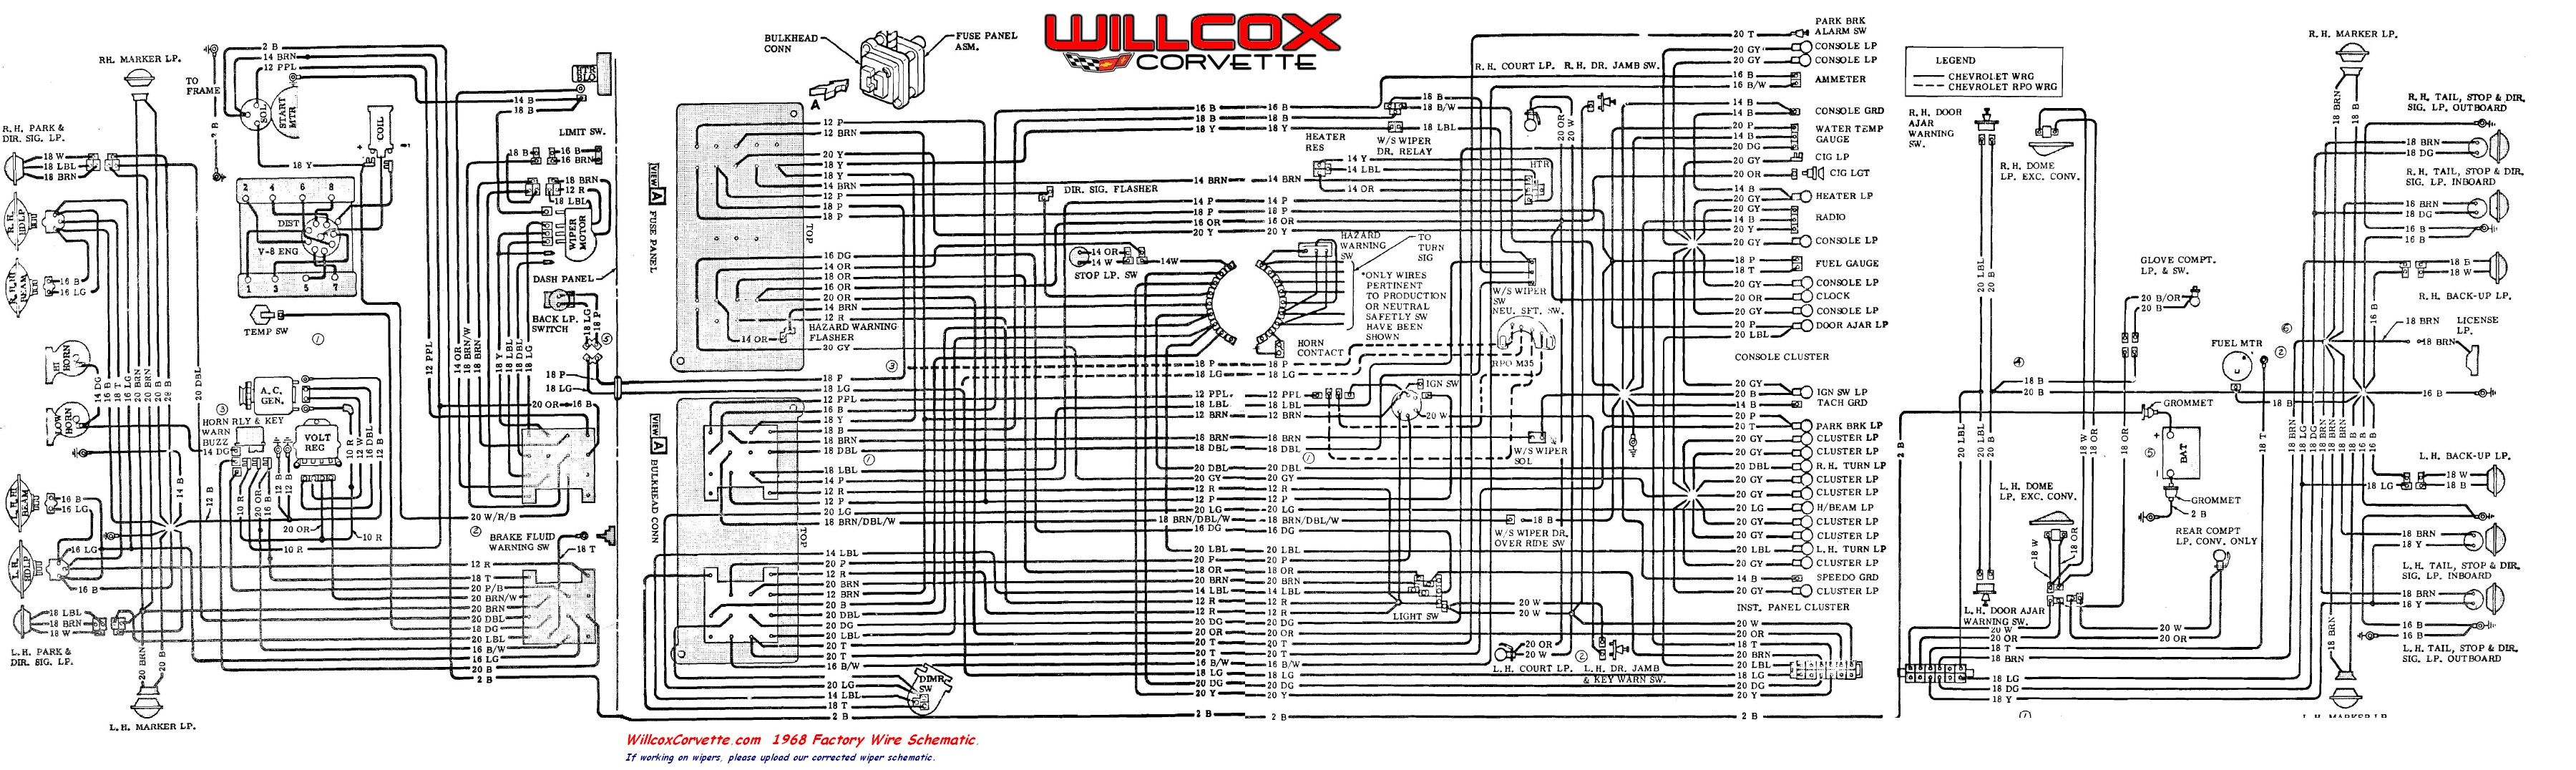 2009 corvette wiring diagrams color wiring info u2022 rh defentic co 1974  corvette wiring diagram pdf